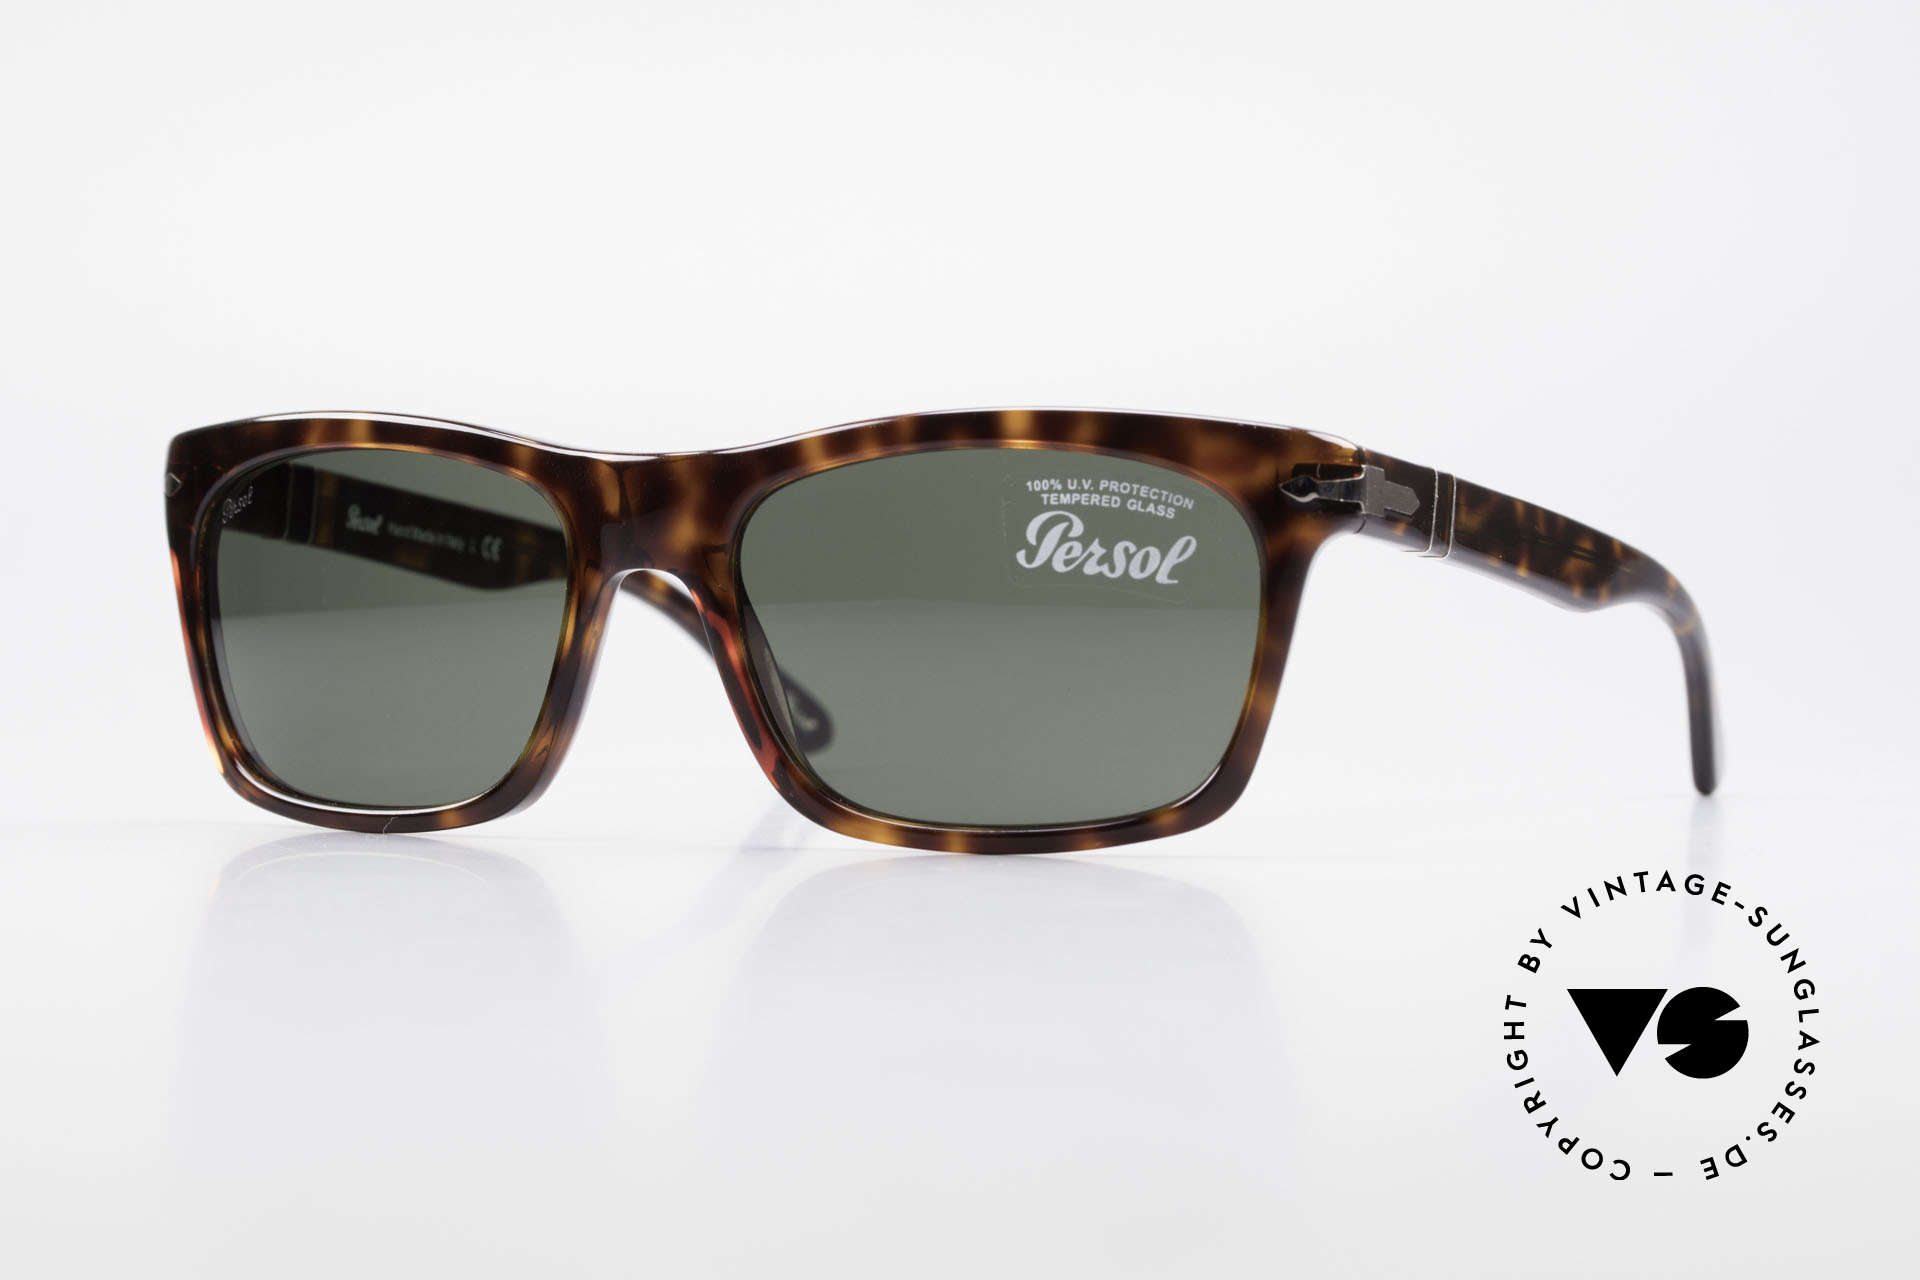 Persol 3062 Classic Unisex Sunglasses, model 3062: very elegant sunglasses by Persol, Made for Men and Women